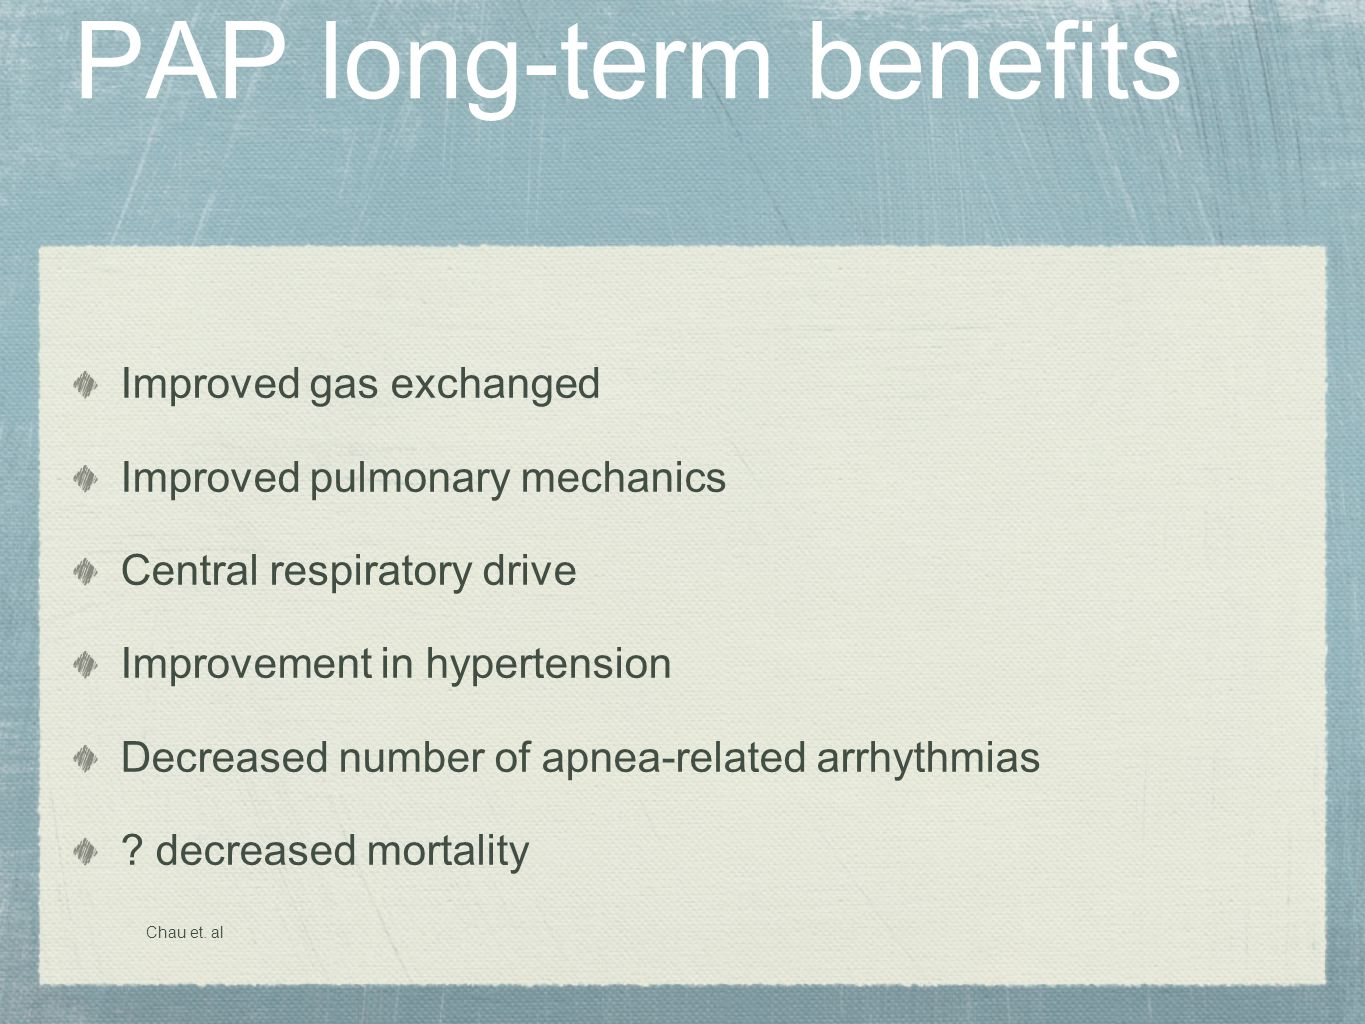 PAP long-term benefits